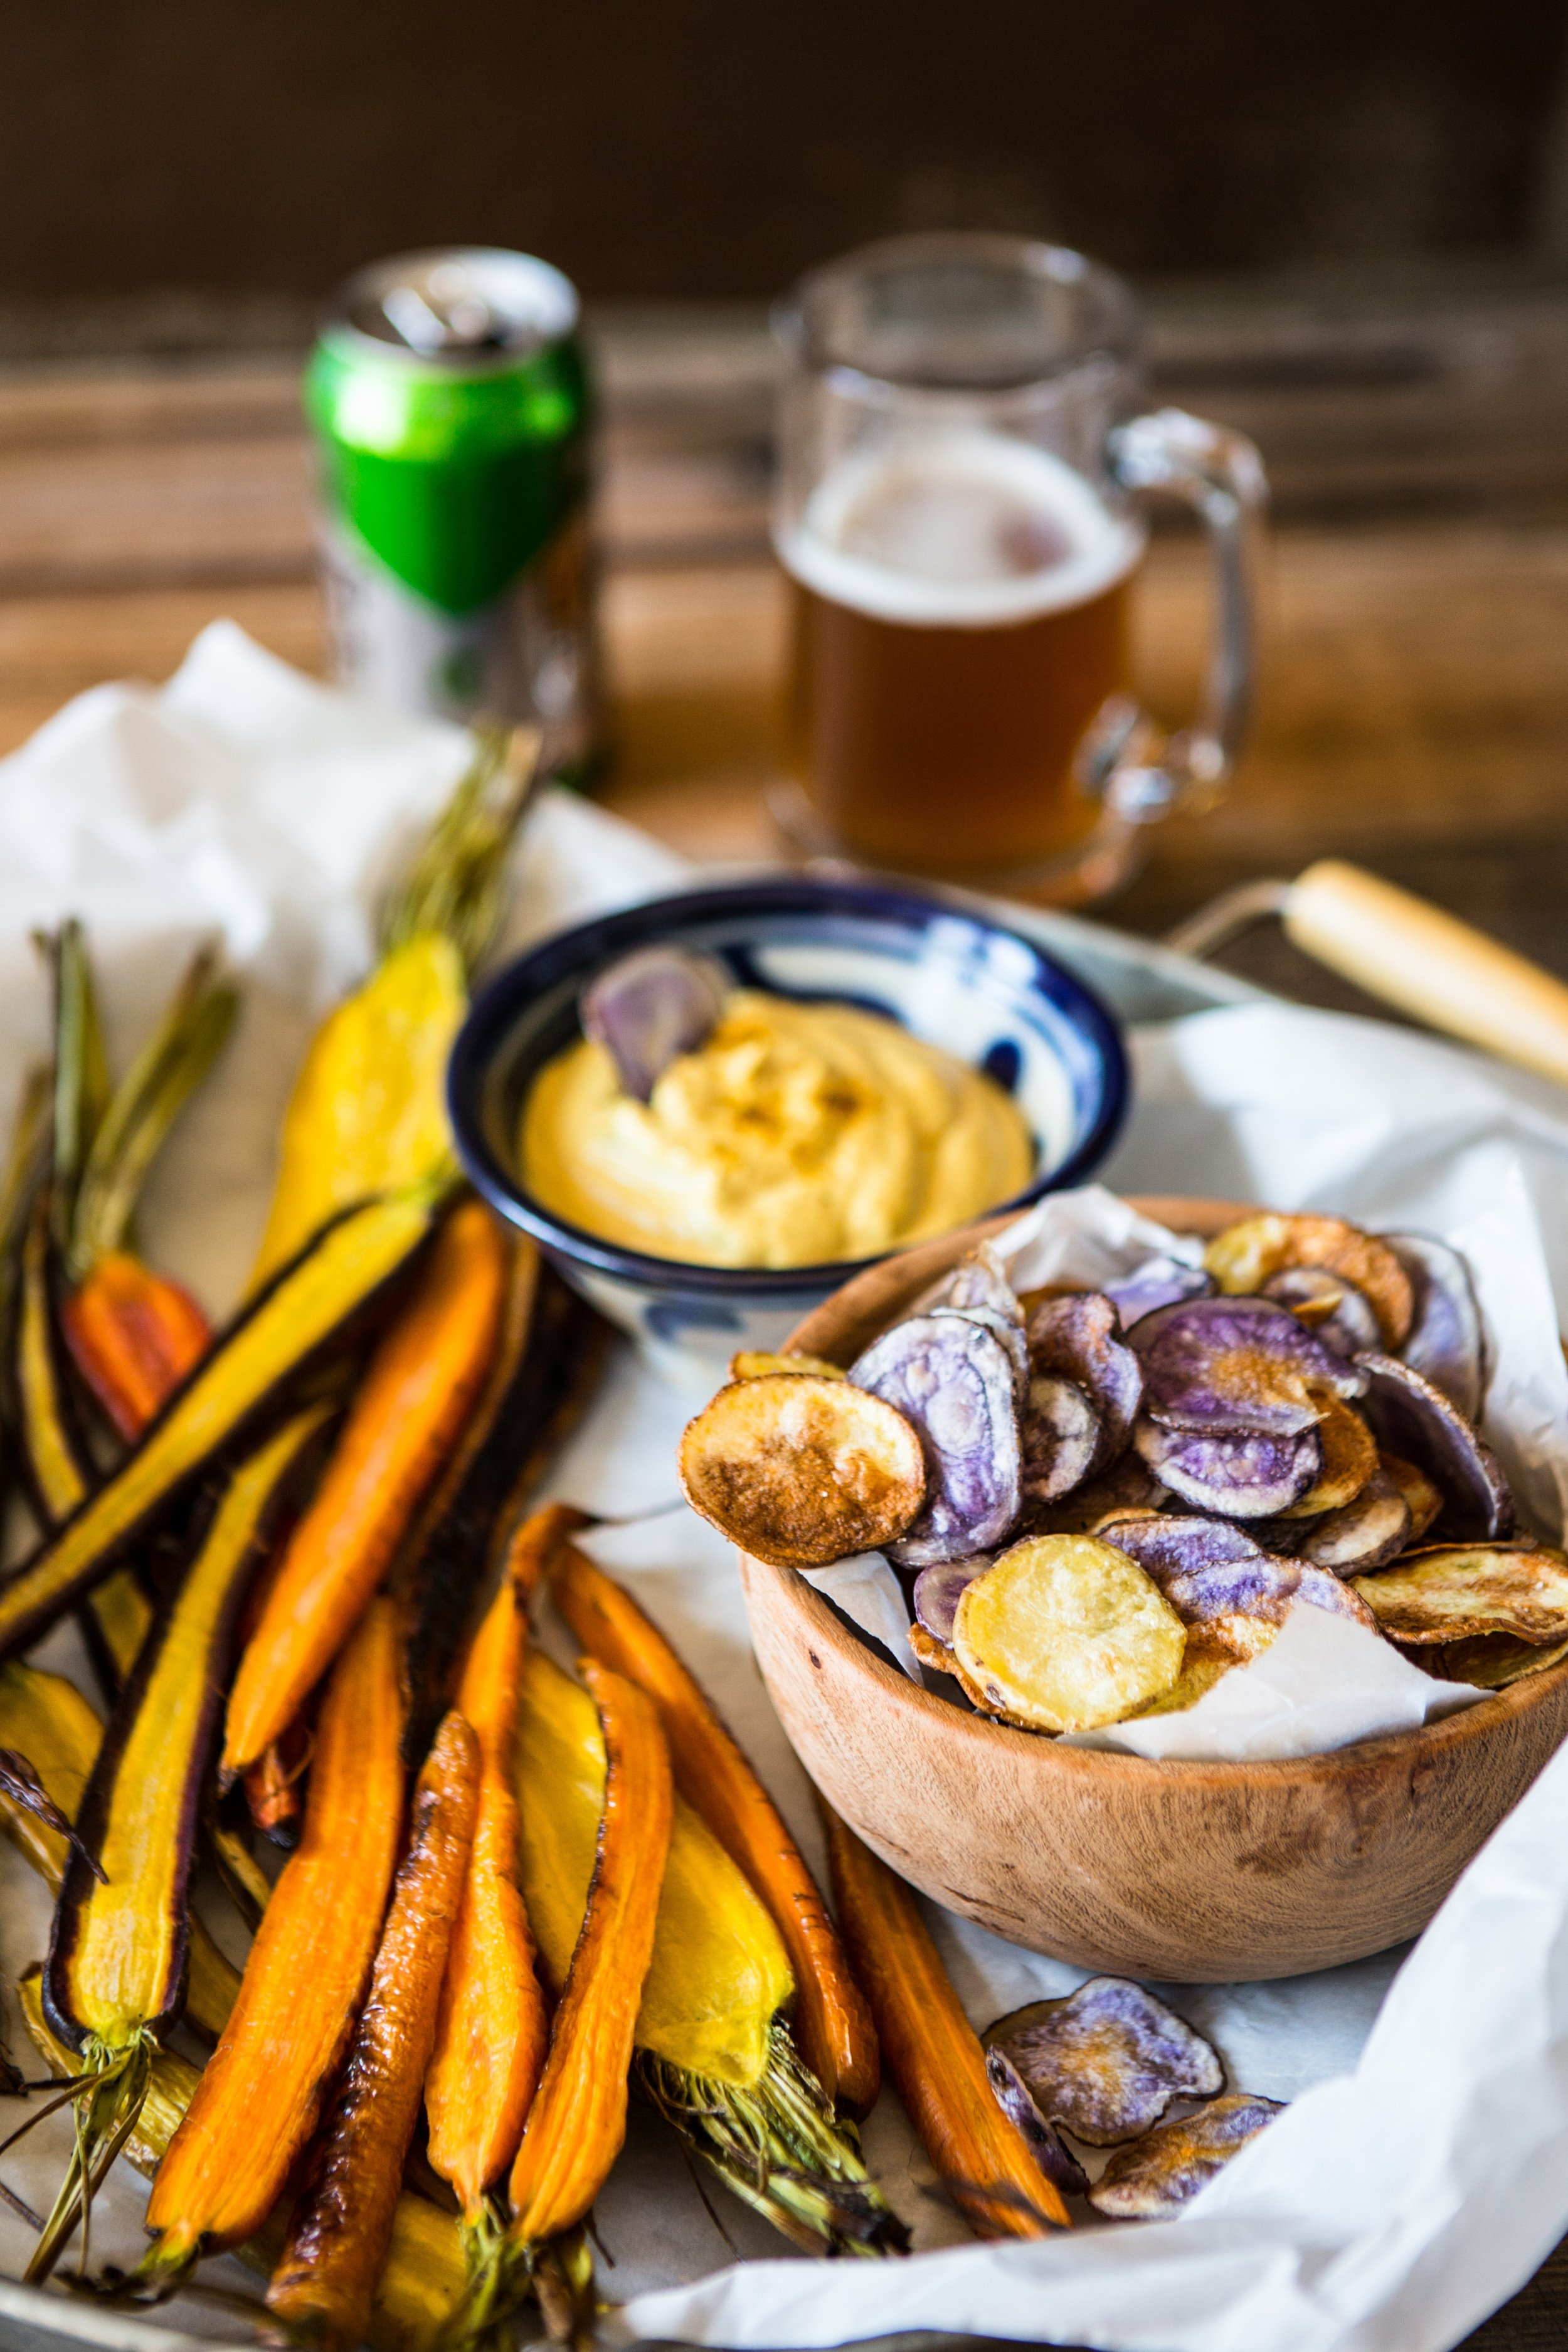 Fresh cooked carrots add a pretty orange hue and subtle sweetness to this creamy hummus. Try serving this as an appetizer at your next dinner party along with pita chips. You can store it in the fridge for up to two days, which actually improves its aroma. Photo source